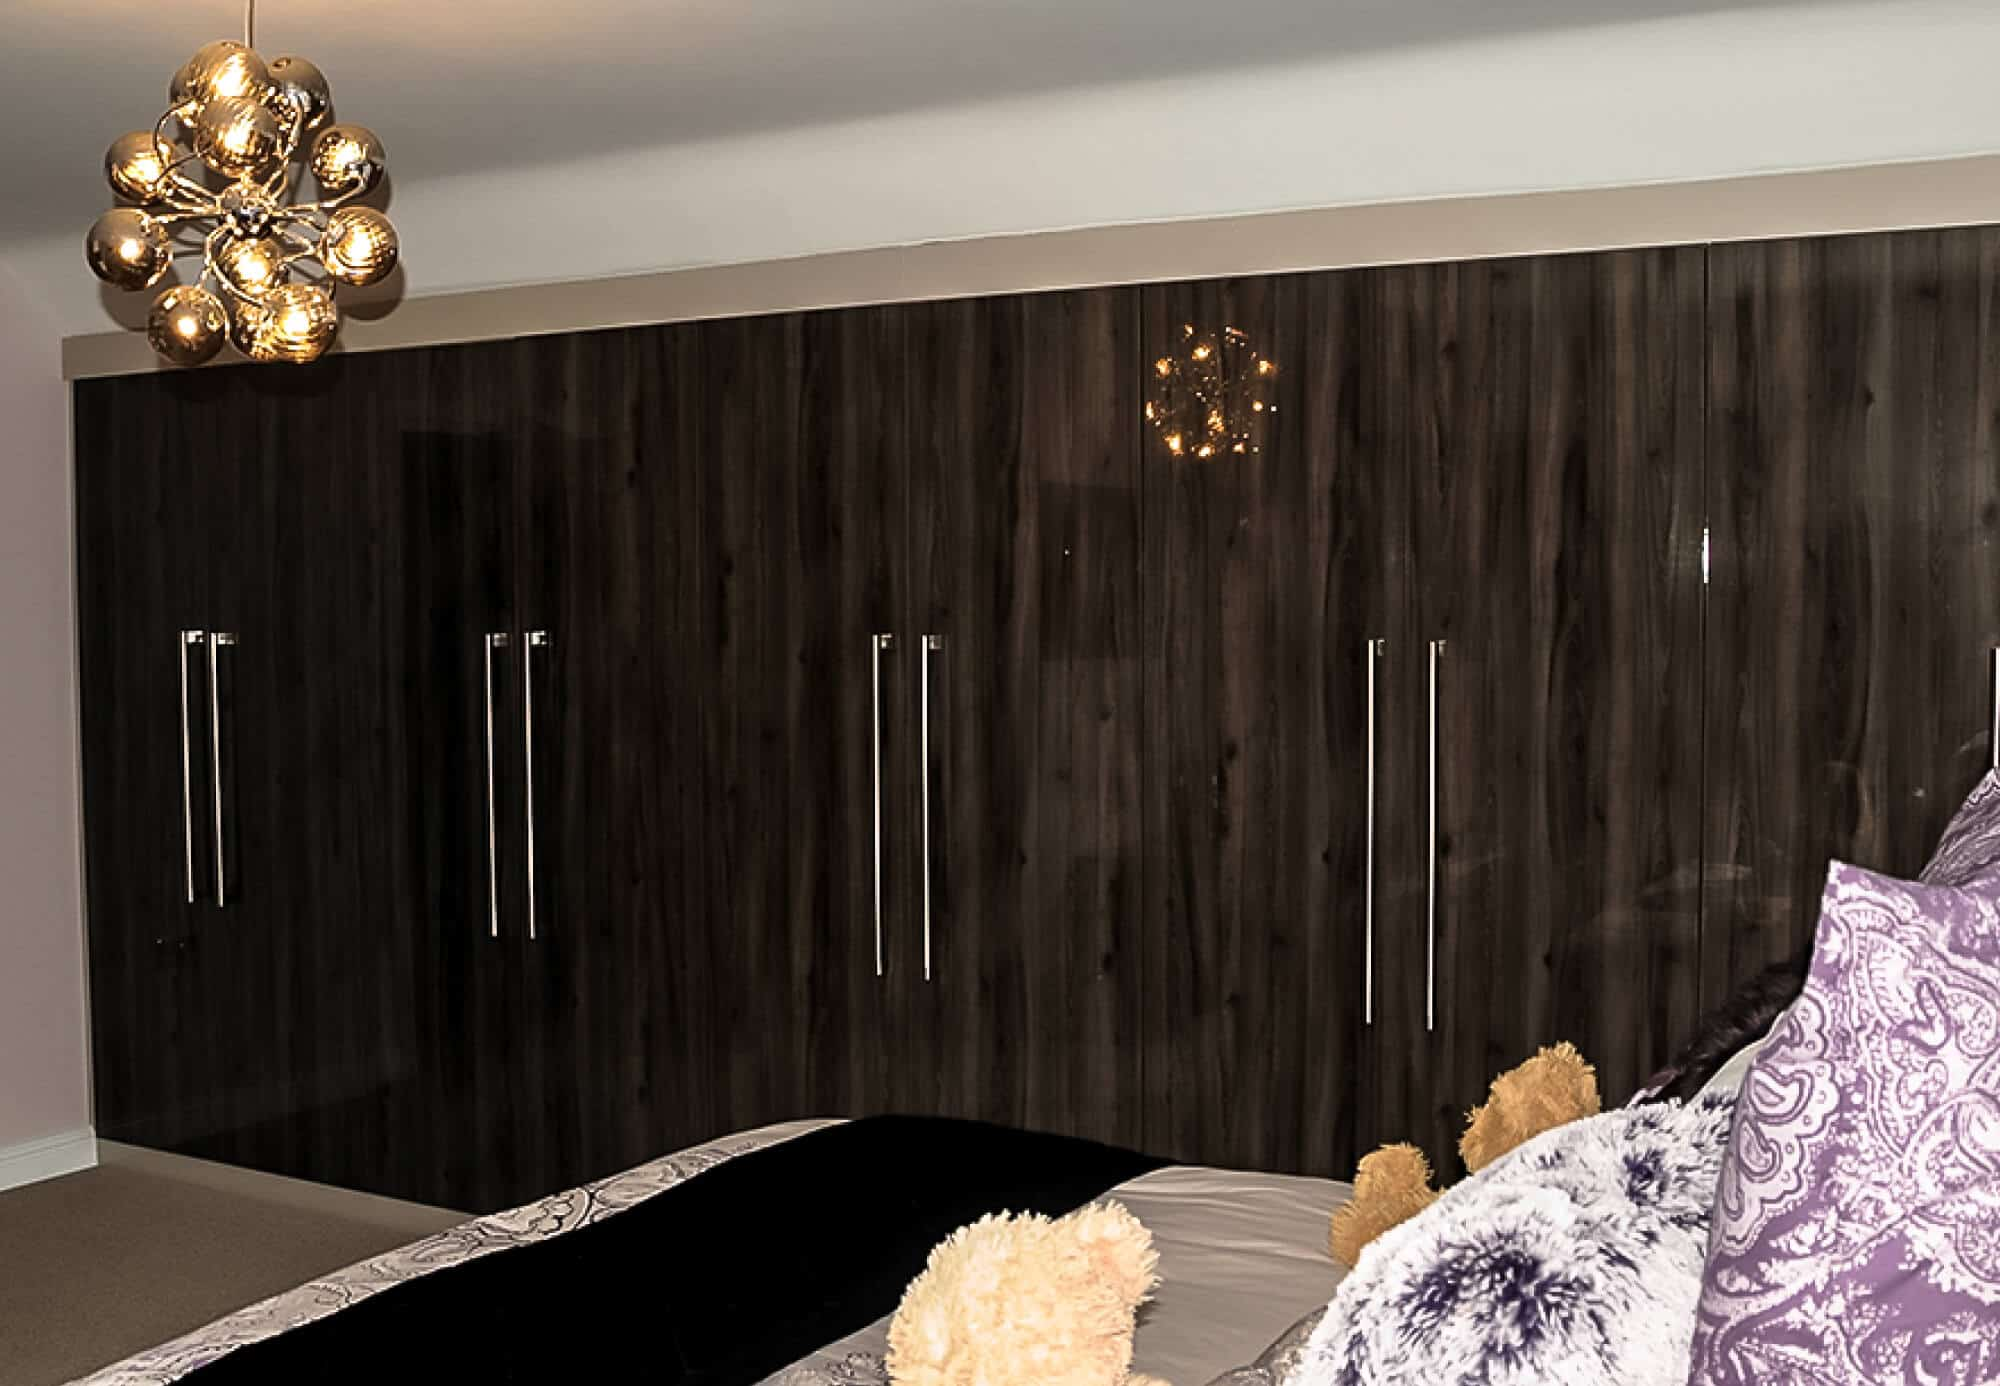 Darkwood bedroom wardrobes with chrome handles